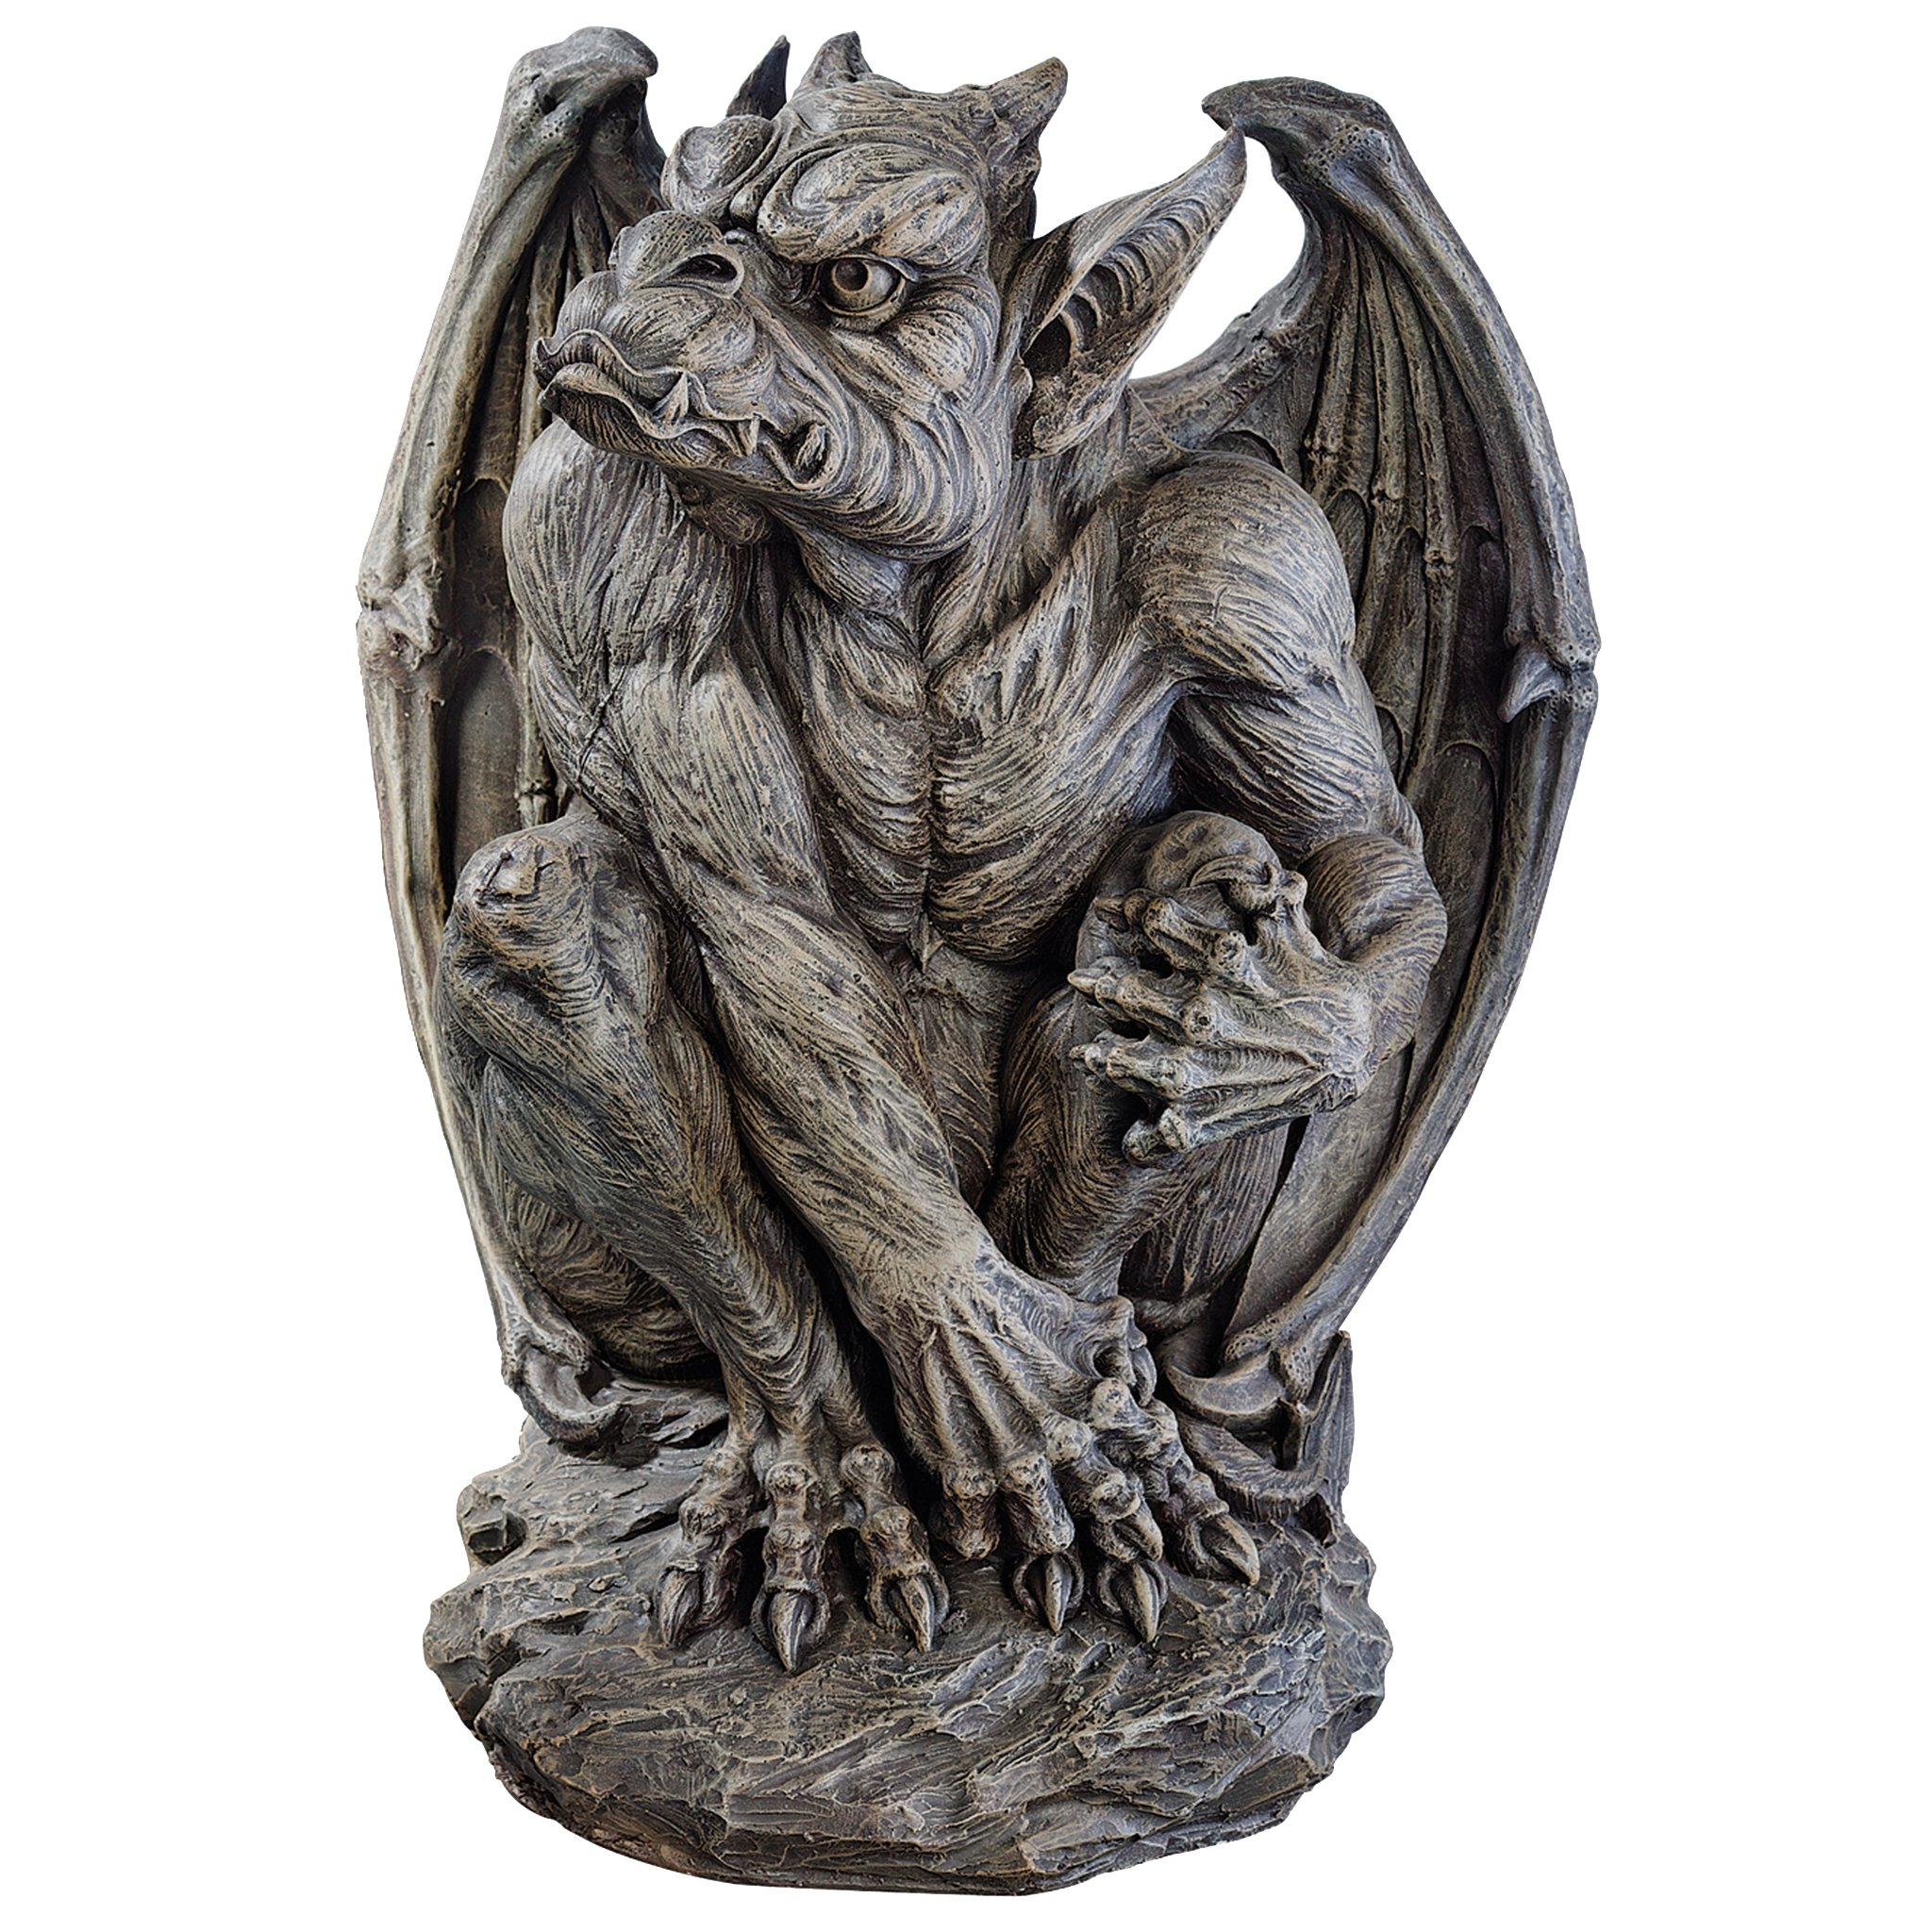 Design Toscano JE11211701 Silas The Sentry Gargoyle Gothic Decor Statue, Large Stone